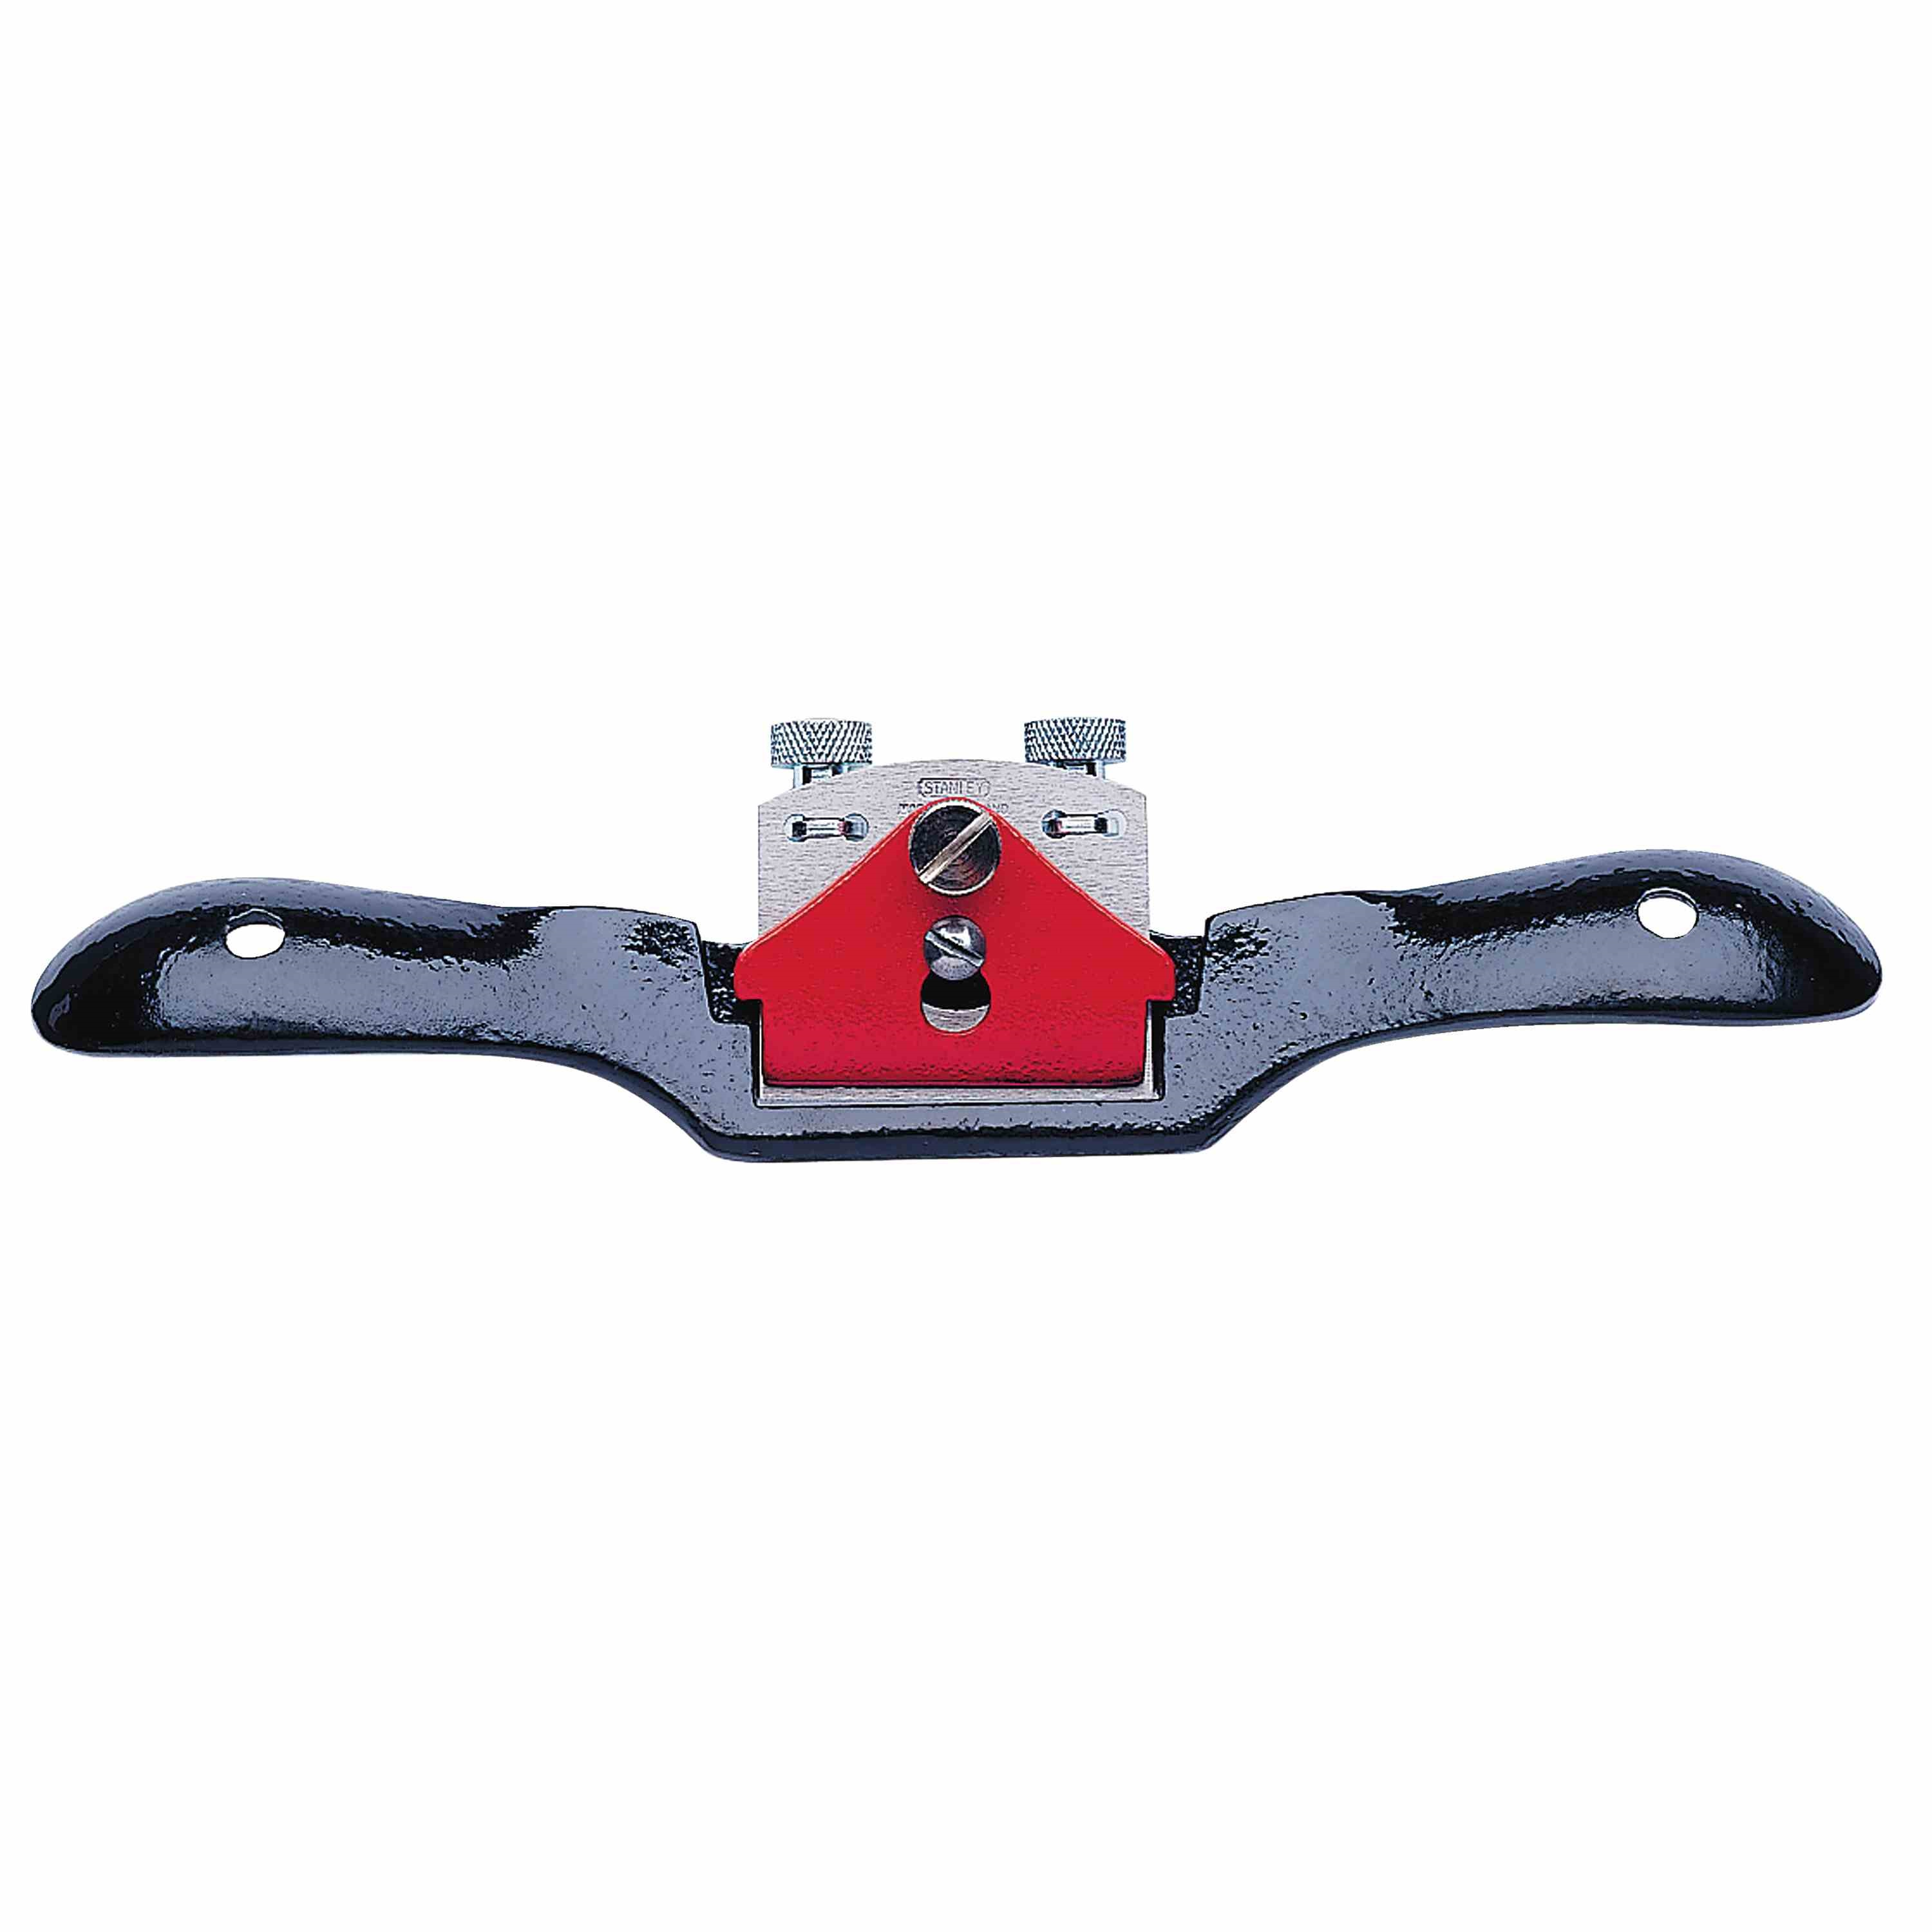 Stanley Tools - SpokeShave Flat Base - 12-951